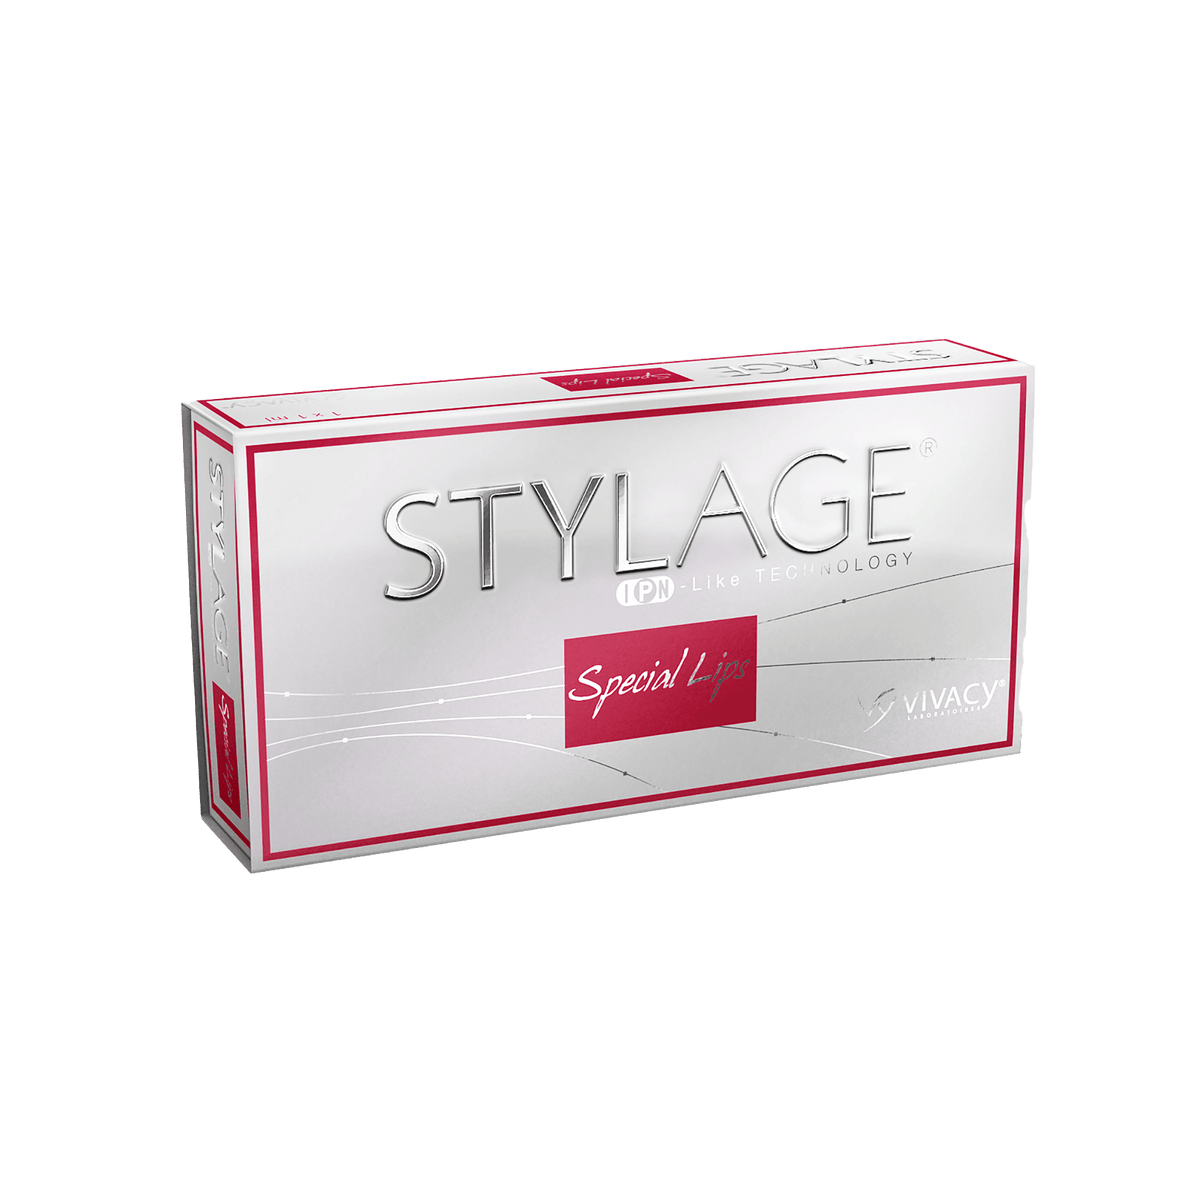 Vivacy - Stylage Lips Fertigspritze 1ml - DANYCARE